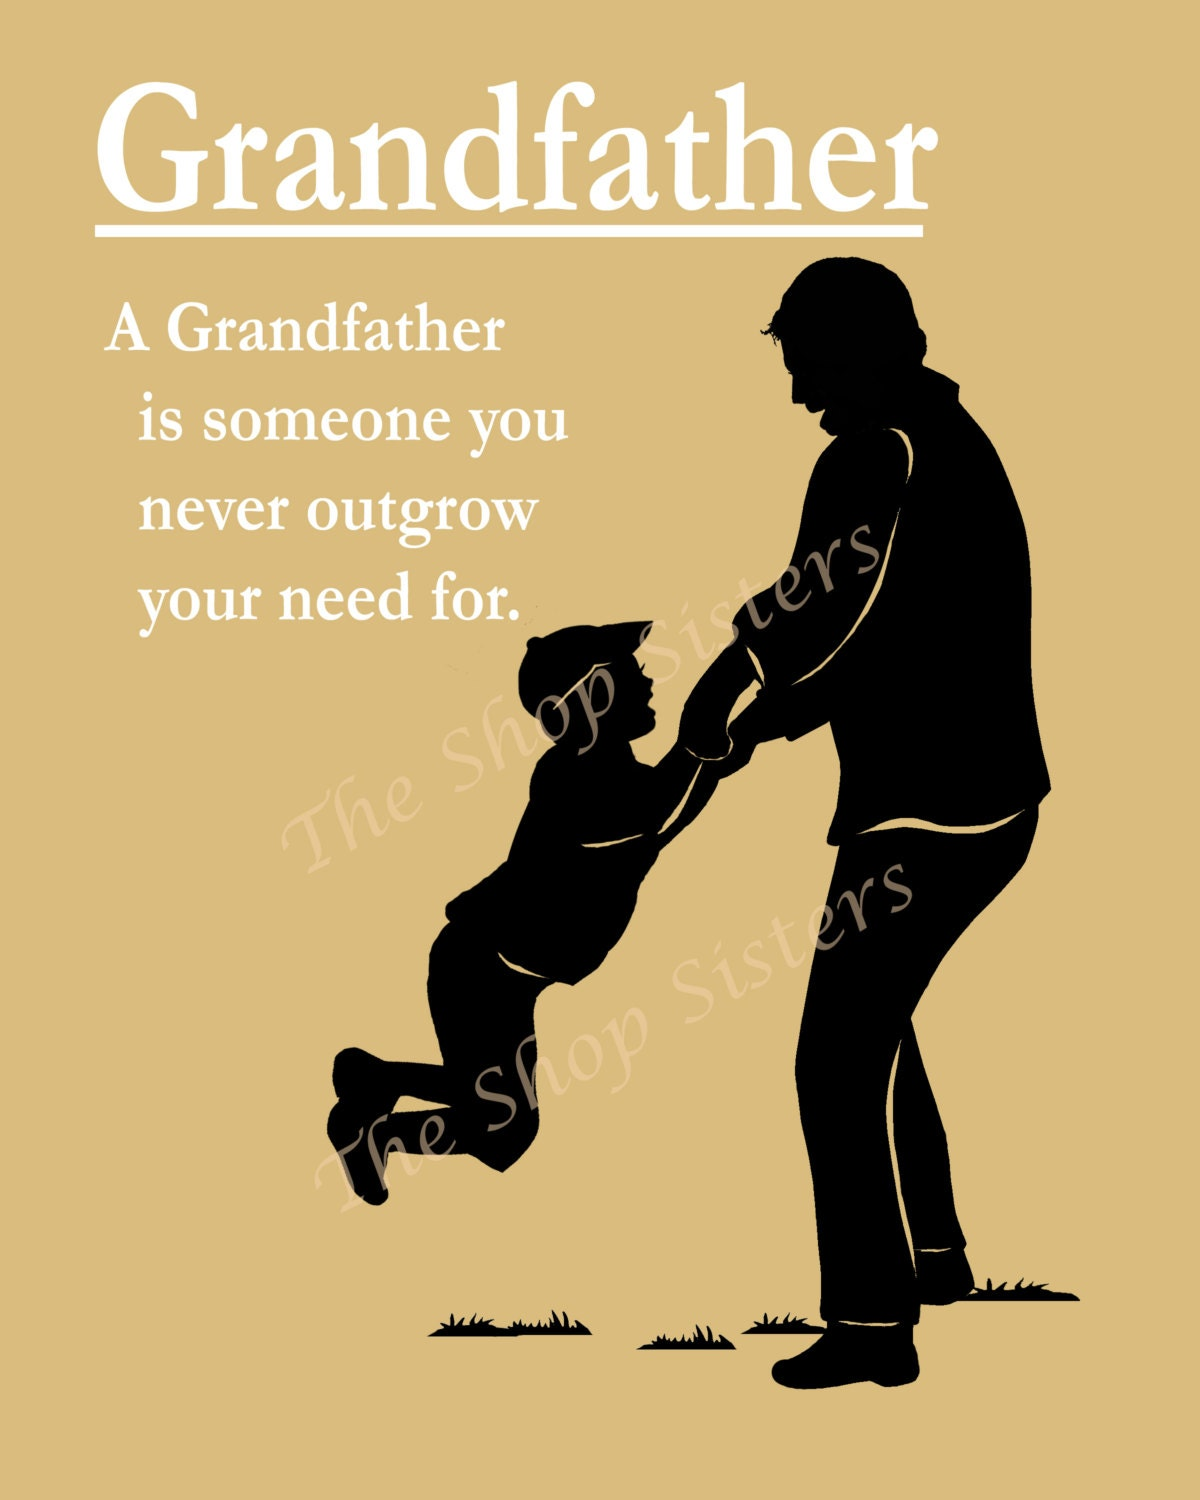 grandmother and grandson relationship quotes